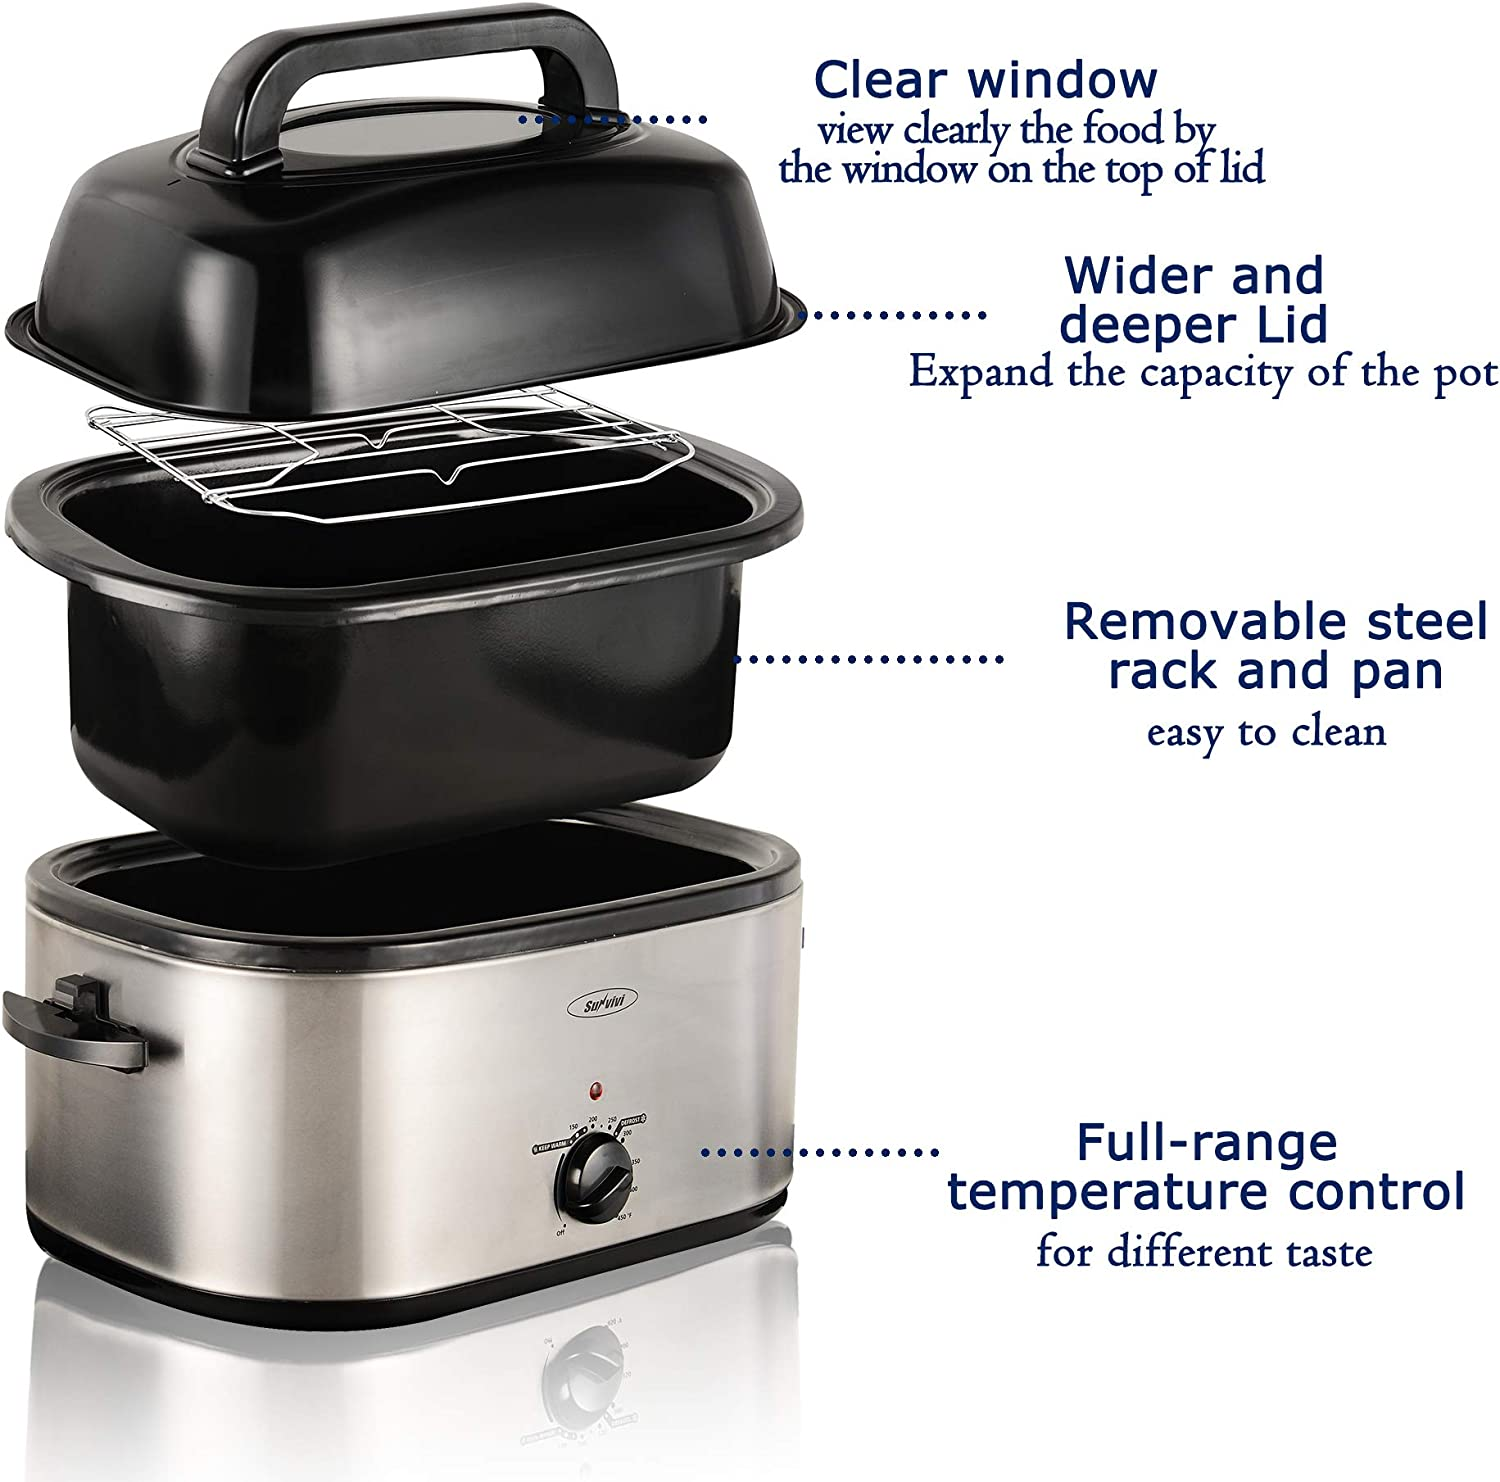 Roaster Oven 24 Quart Silver Electric Roaster Oven Turkey Roaster Oven Electric Buffet with Self-Basting Lid Full-Range Temperature Power 1450W Stainless Steel Roaster Oven Removable Pan and Rack